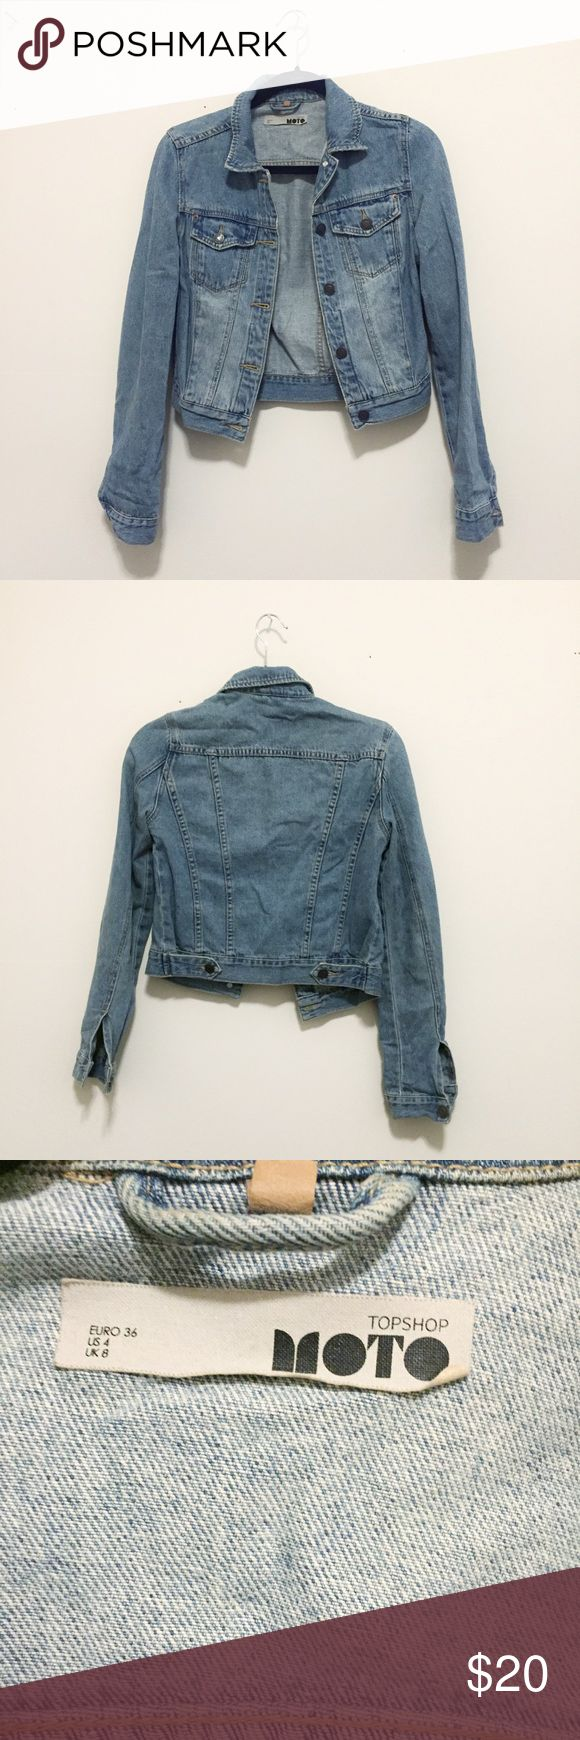 Topshop Denim Jacket Love this but it hasn't been getting enough love in my closet so I'm looking for a new home! Topshop runs small so I would say it would fit a size 2. Great condition! Topshop Jackets & Coats Jean Jackets